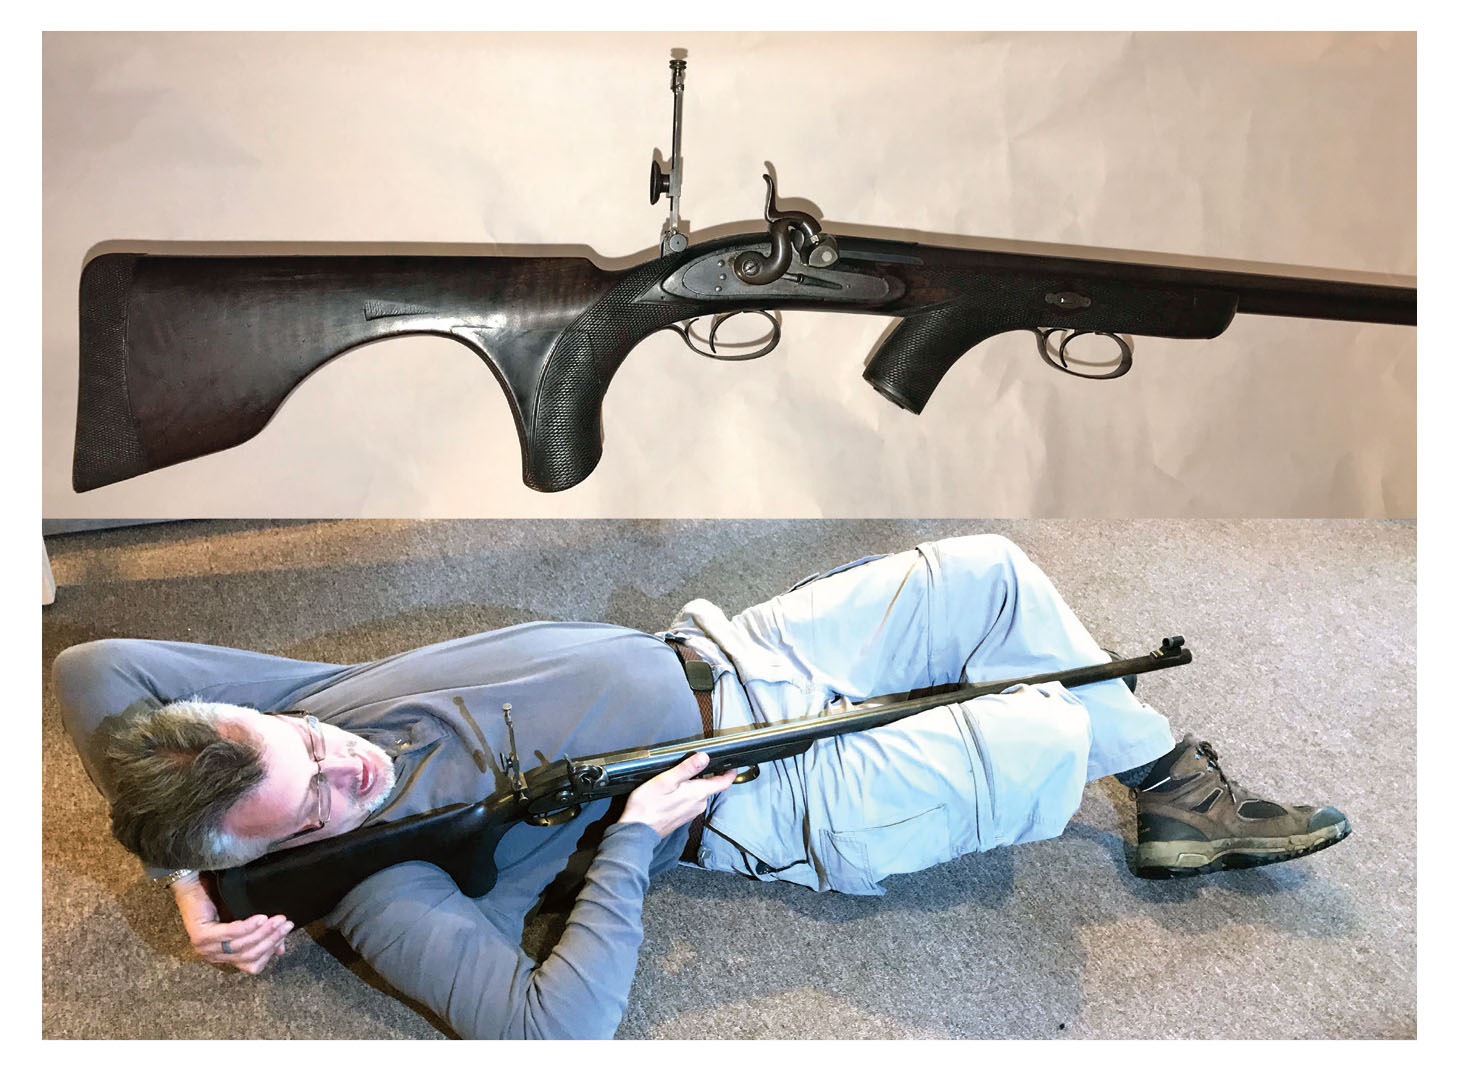 Alexander Henry two-position rifle - they shot body support only. No kidding . . .